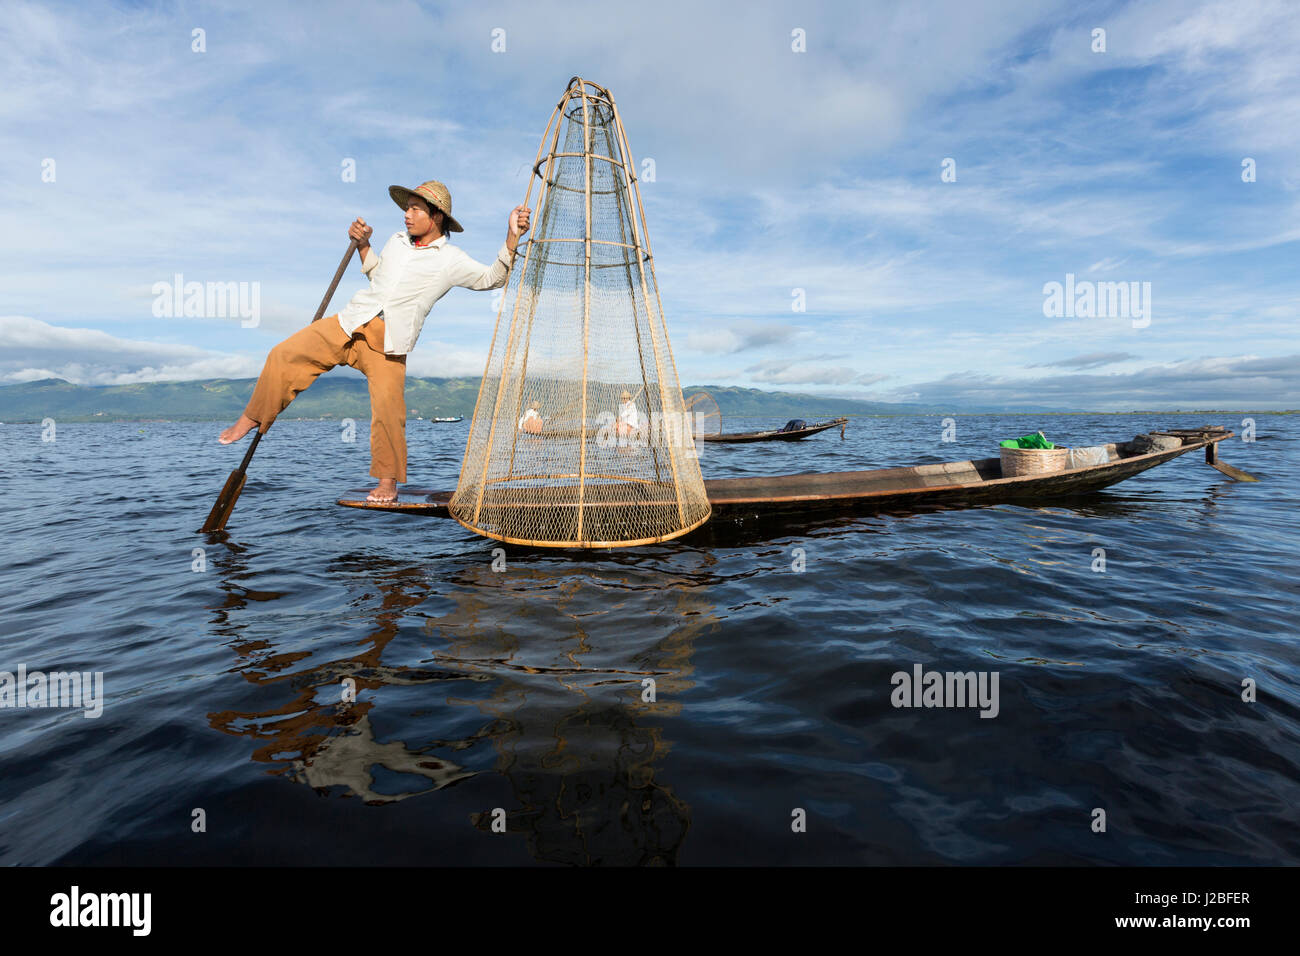 Myanmar, Inle Lake. Young fisherman demonstrates a traditional rowing technique. - Stock Image